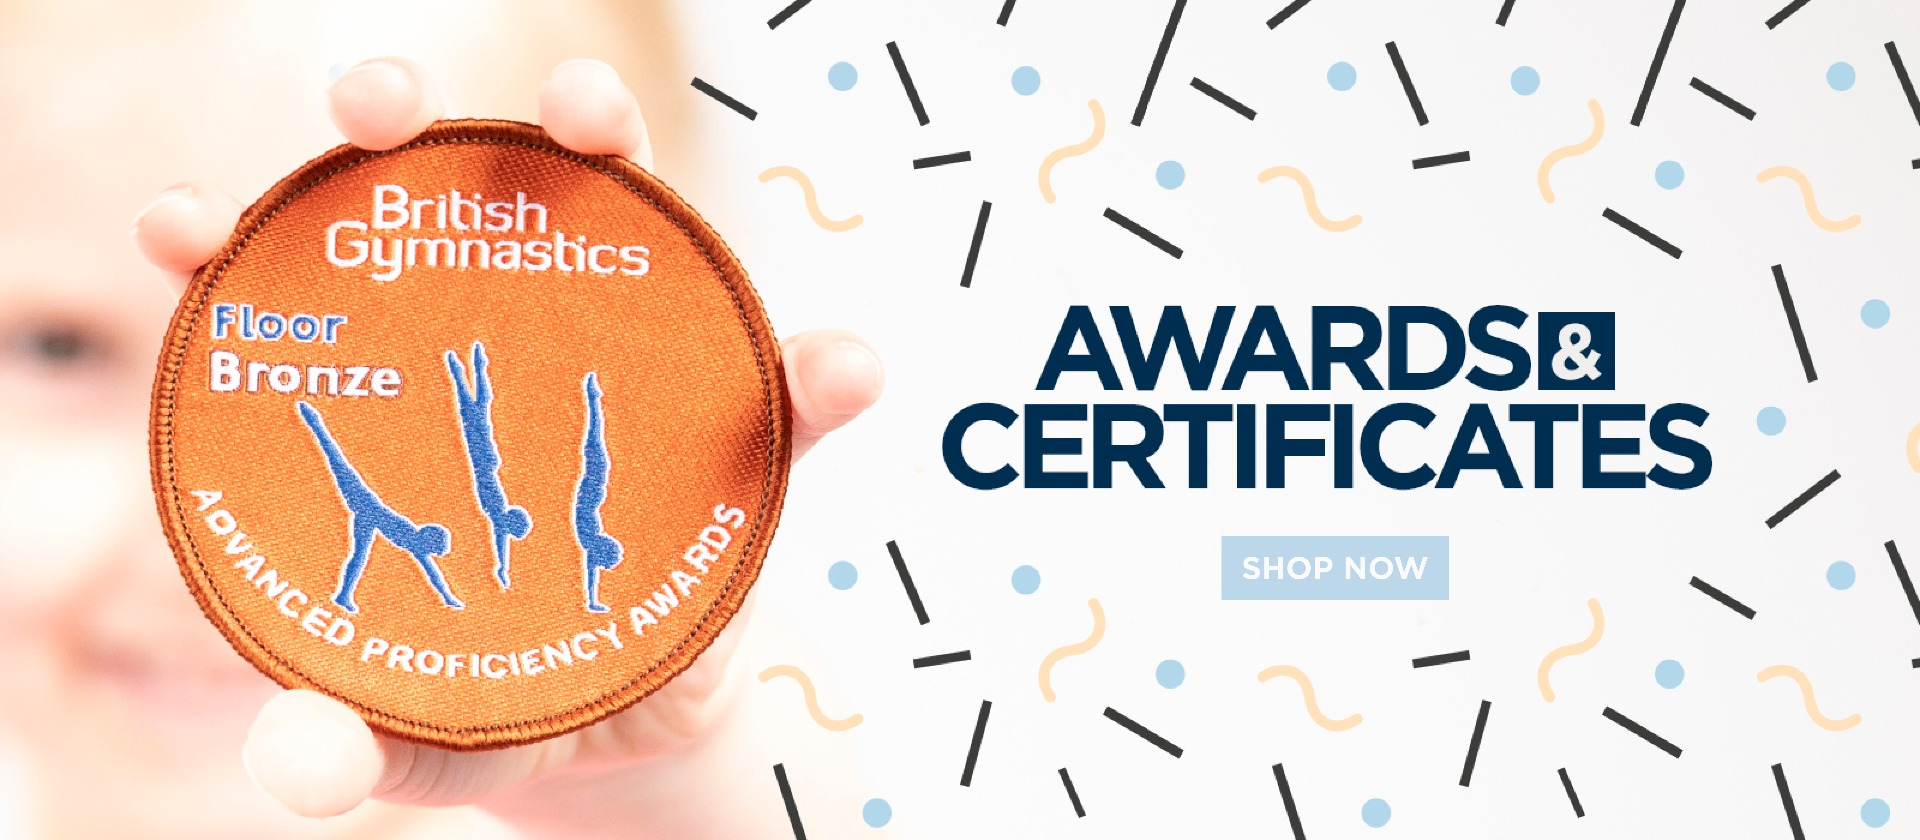 British Gymnastics Badges & Certificates